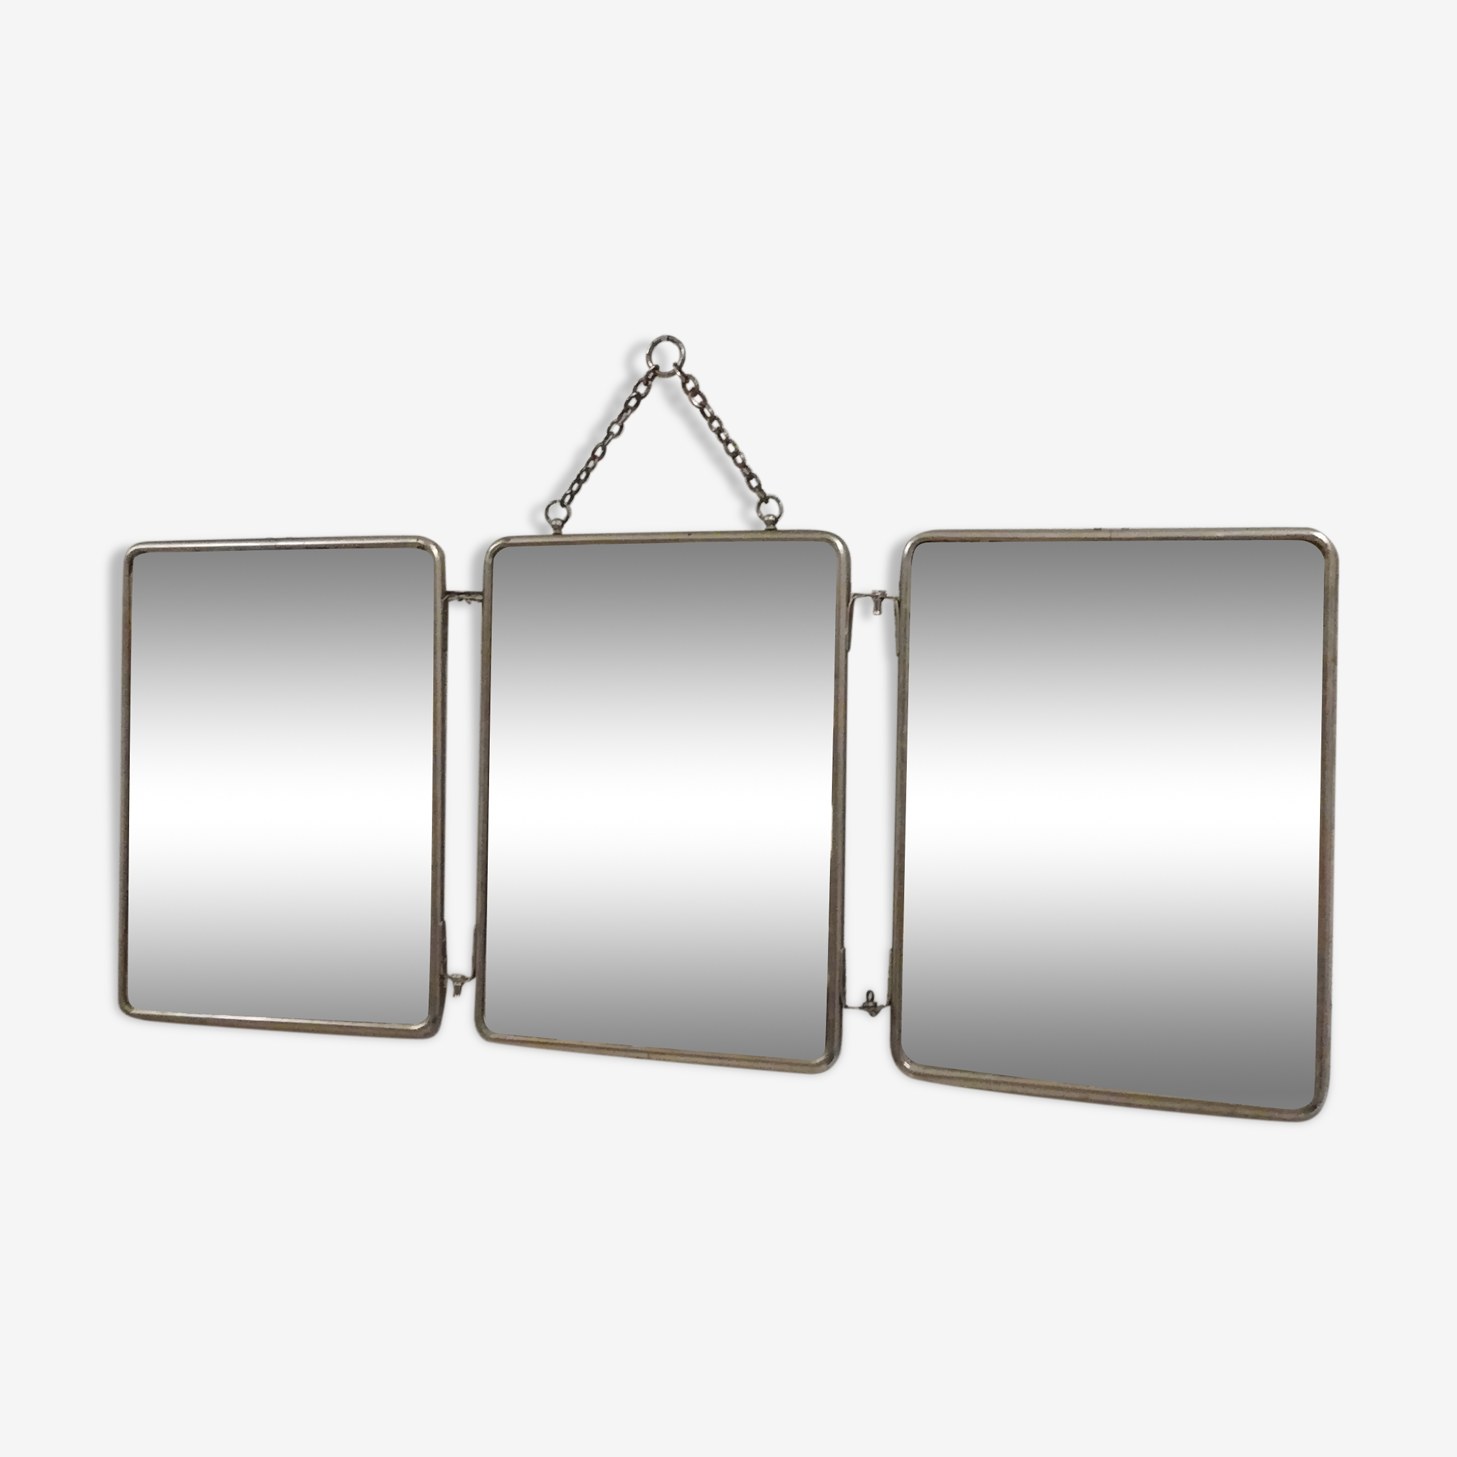 Triptych mirror from the 50's - 60x24cm